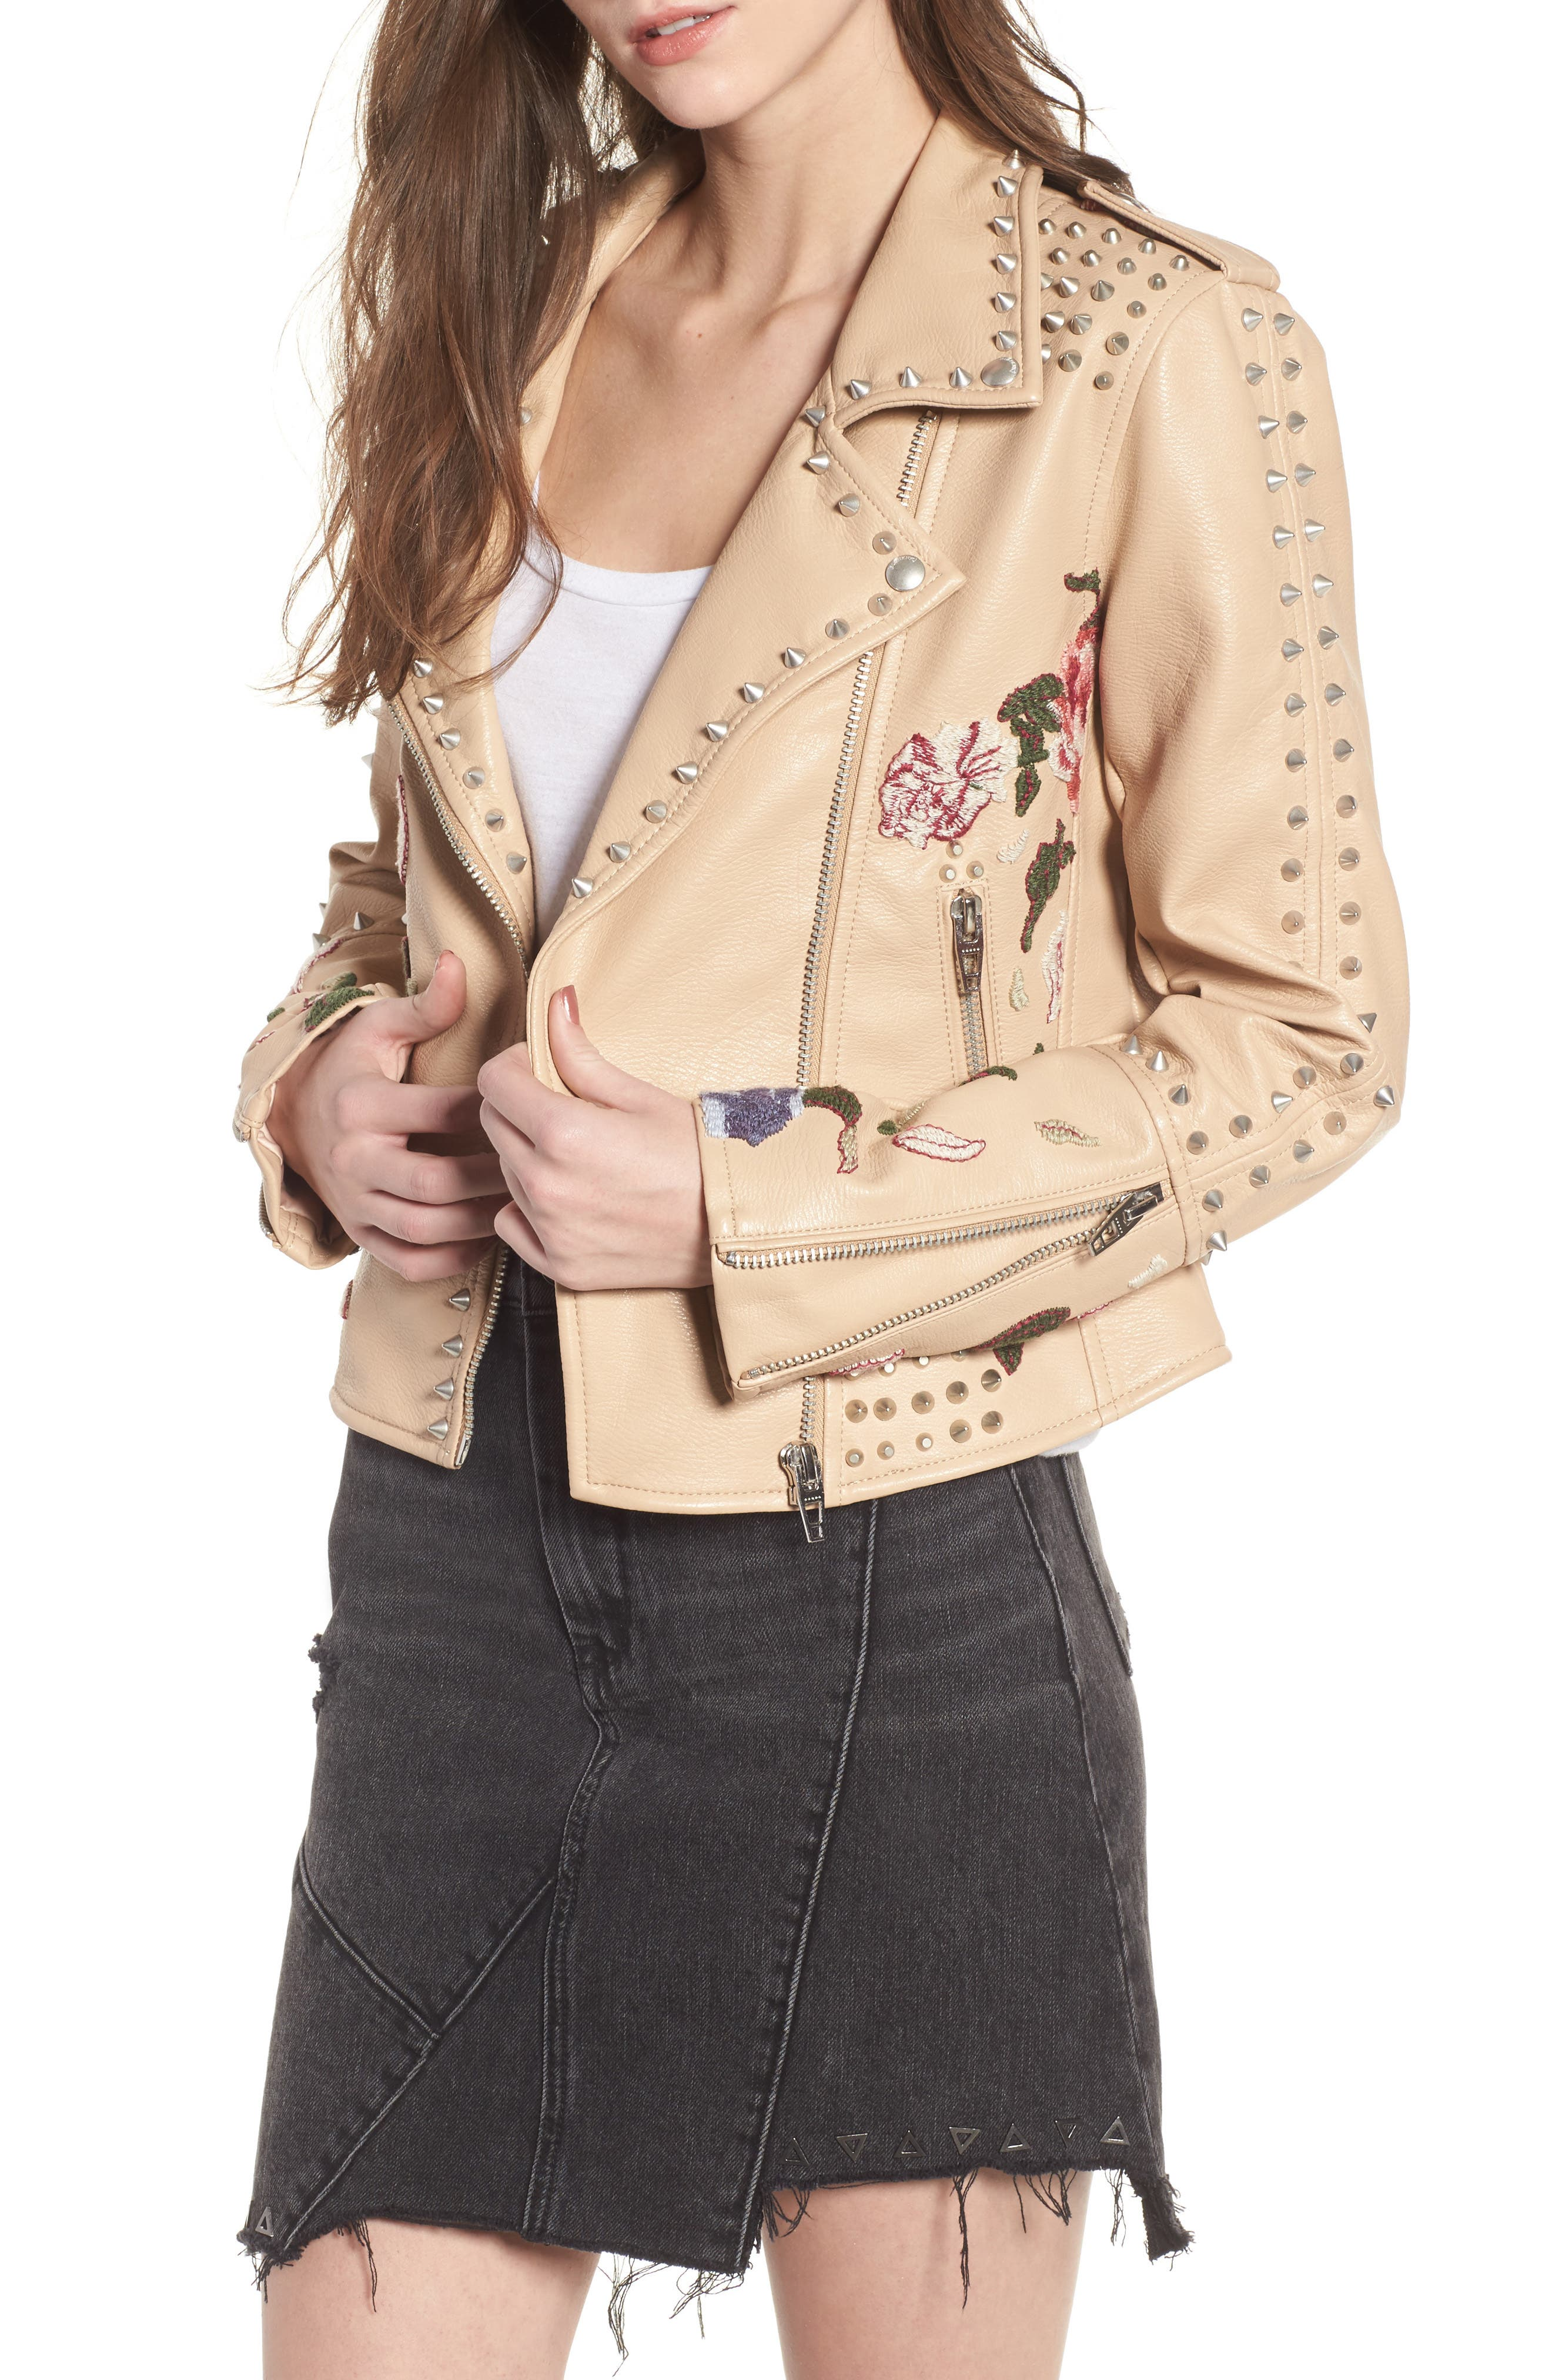 Main Image - BLANKNYC Embellished Faux Leather Moto Jacket